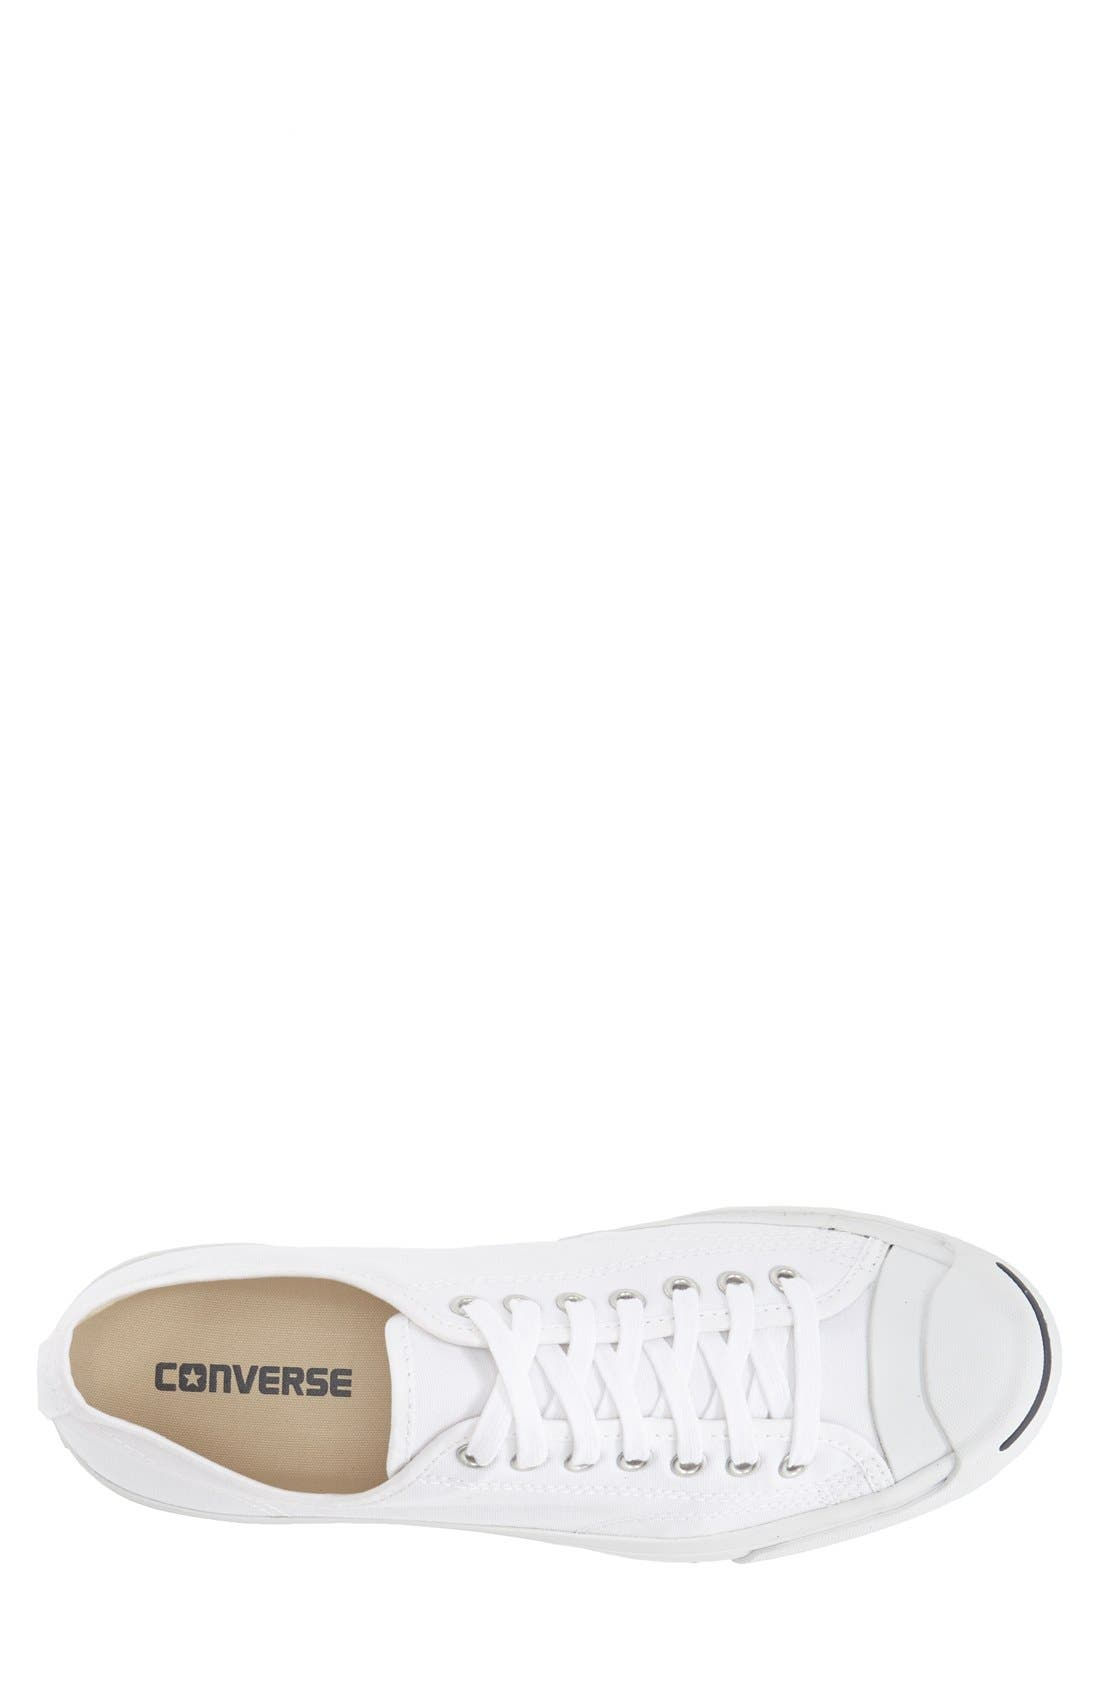 Alternate Image 3  - Converse 'Jack Purcell' Sneaker (Men)